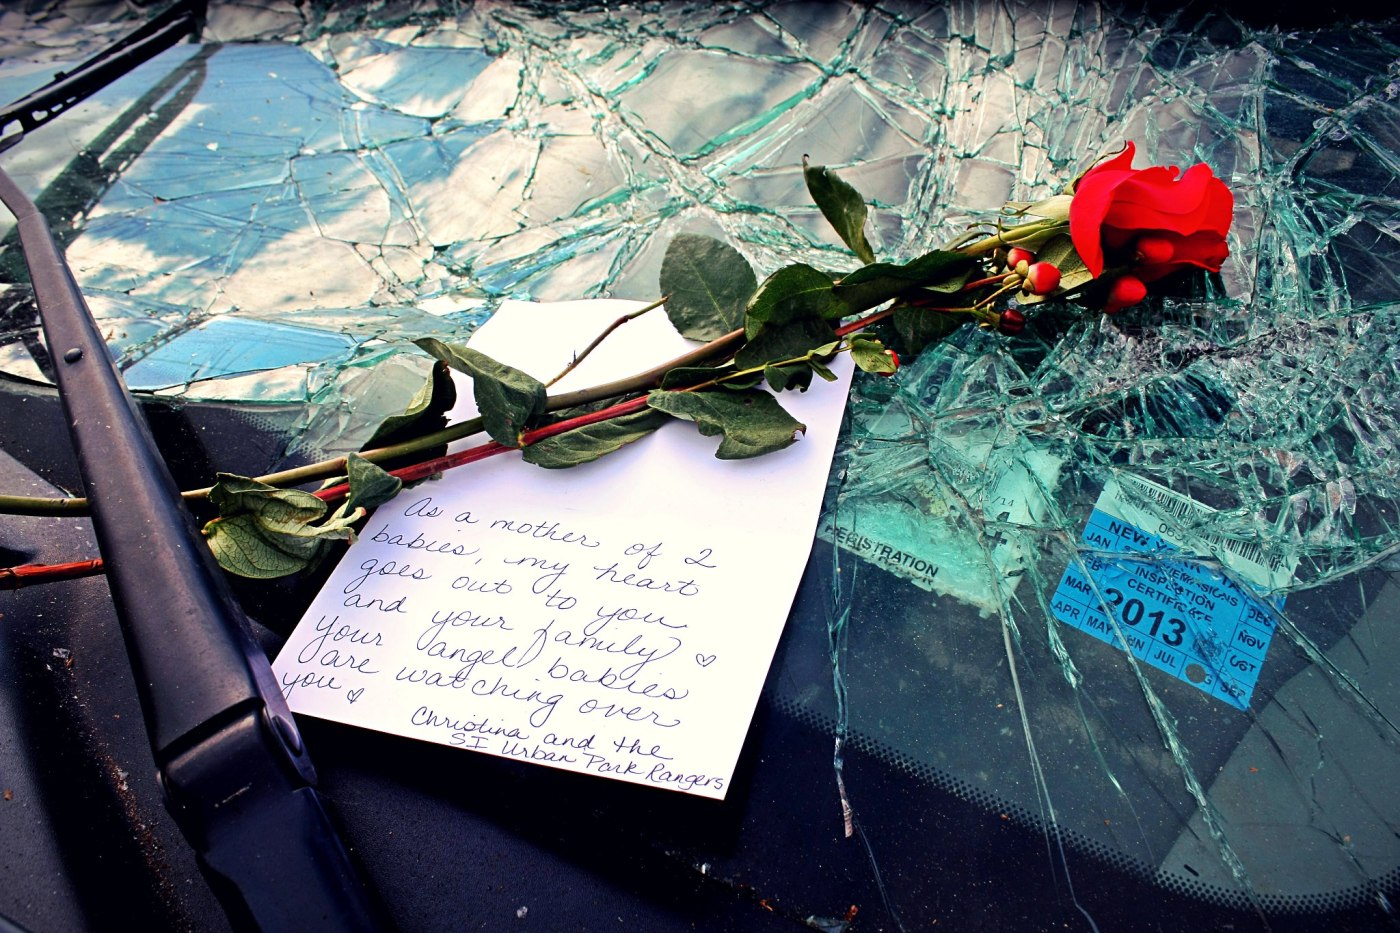 """November 3rd, 2012: A rose and a note left on a car in Staten Island that belonged to a woman who abandoned the car after it was overtaken by flood water during Hurricane Sandy. She had her two sons with her - 2 and 4 years old - and they were ripped from her arms by the rising water and drowned. The note says: """"As a mother of two babies, my heart goes out to you and your family. Your angle babies are watching over you. - Christina and the SI Urban Park Rangers"""""""